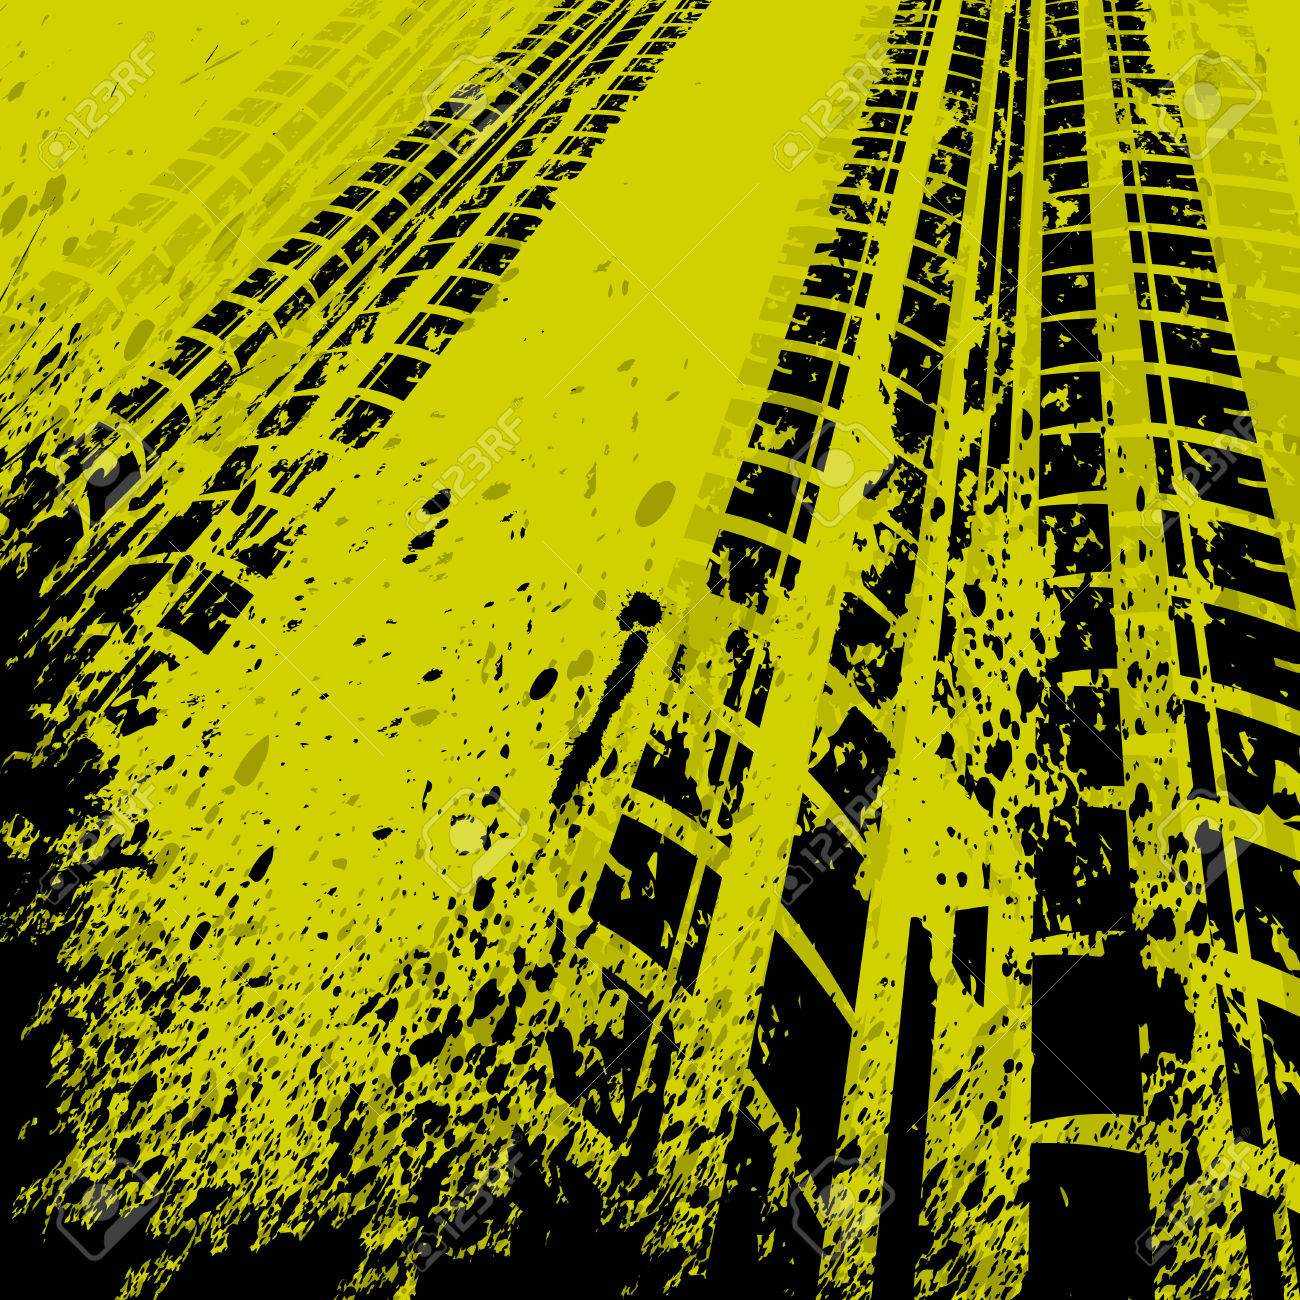 Yellow grunge background with black tire track. - 26787486